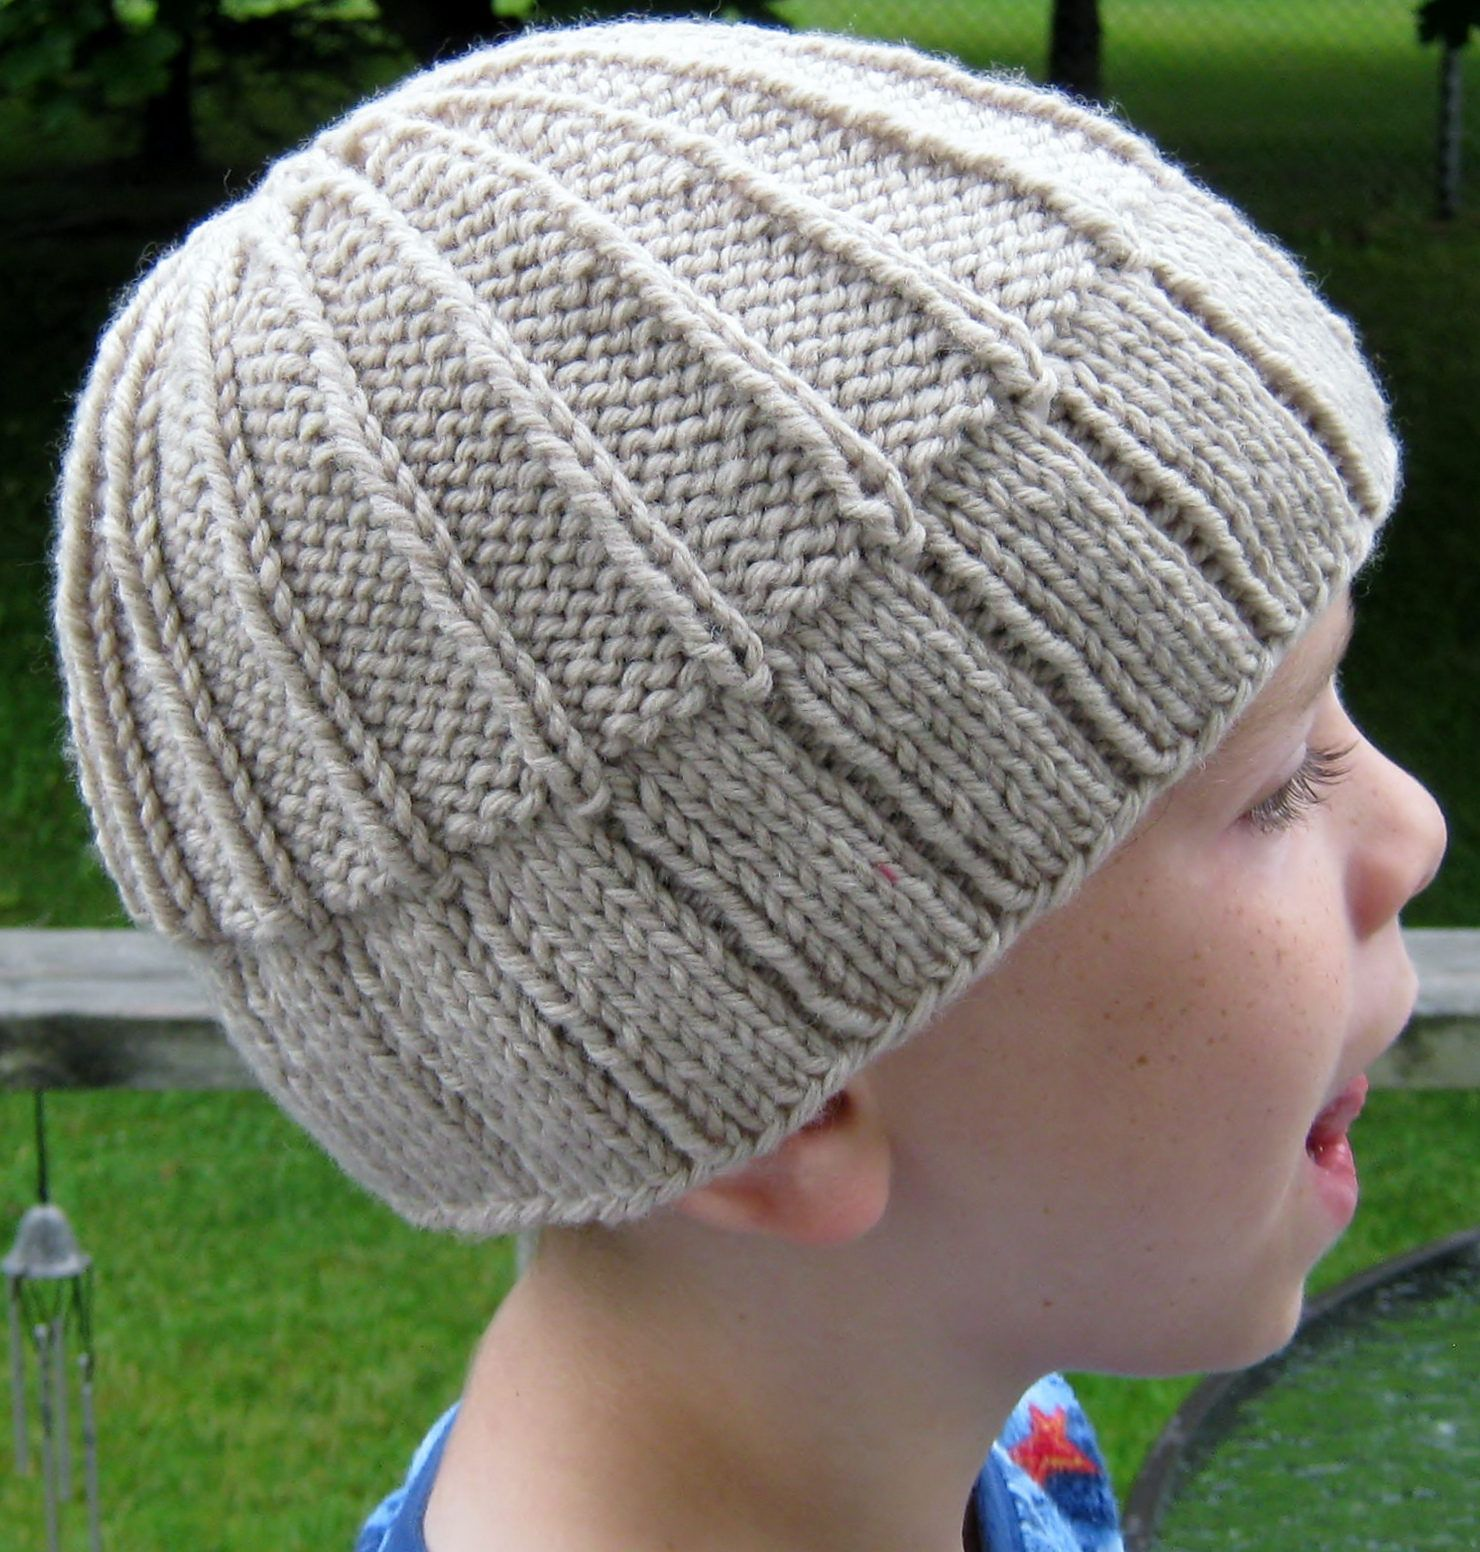 37dbd832512 Knitting Pattern for Easy Ribby Toque - Reversing the ribbing used in the  brim for the body creates a simple but interesting design in this unisex  beanie ...